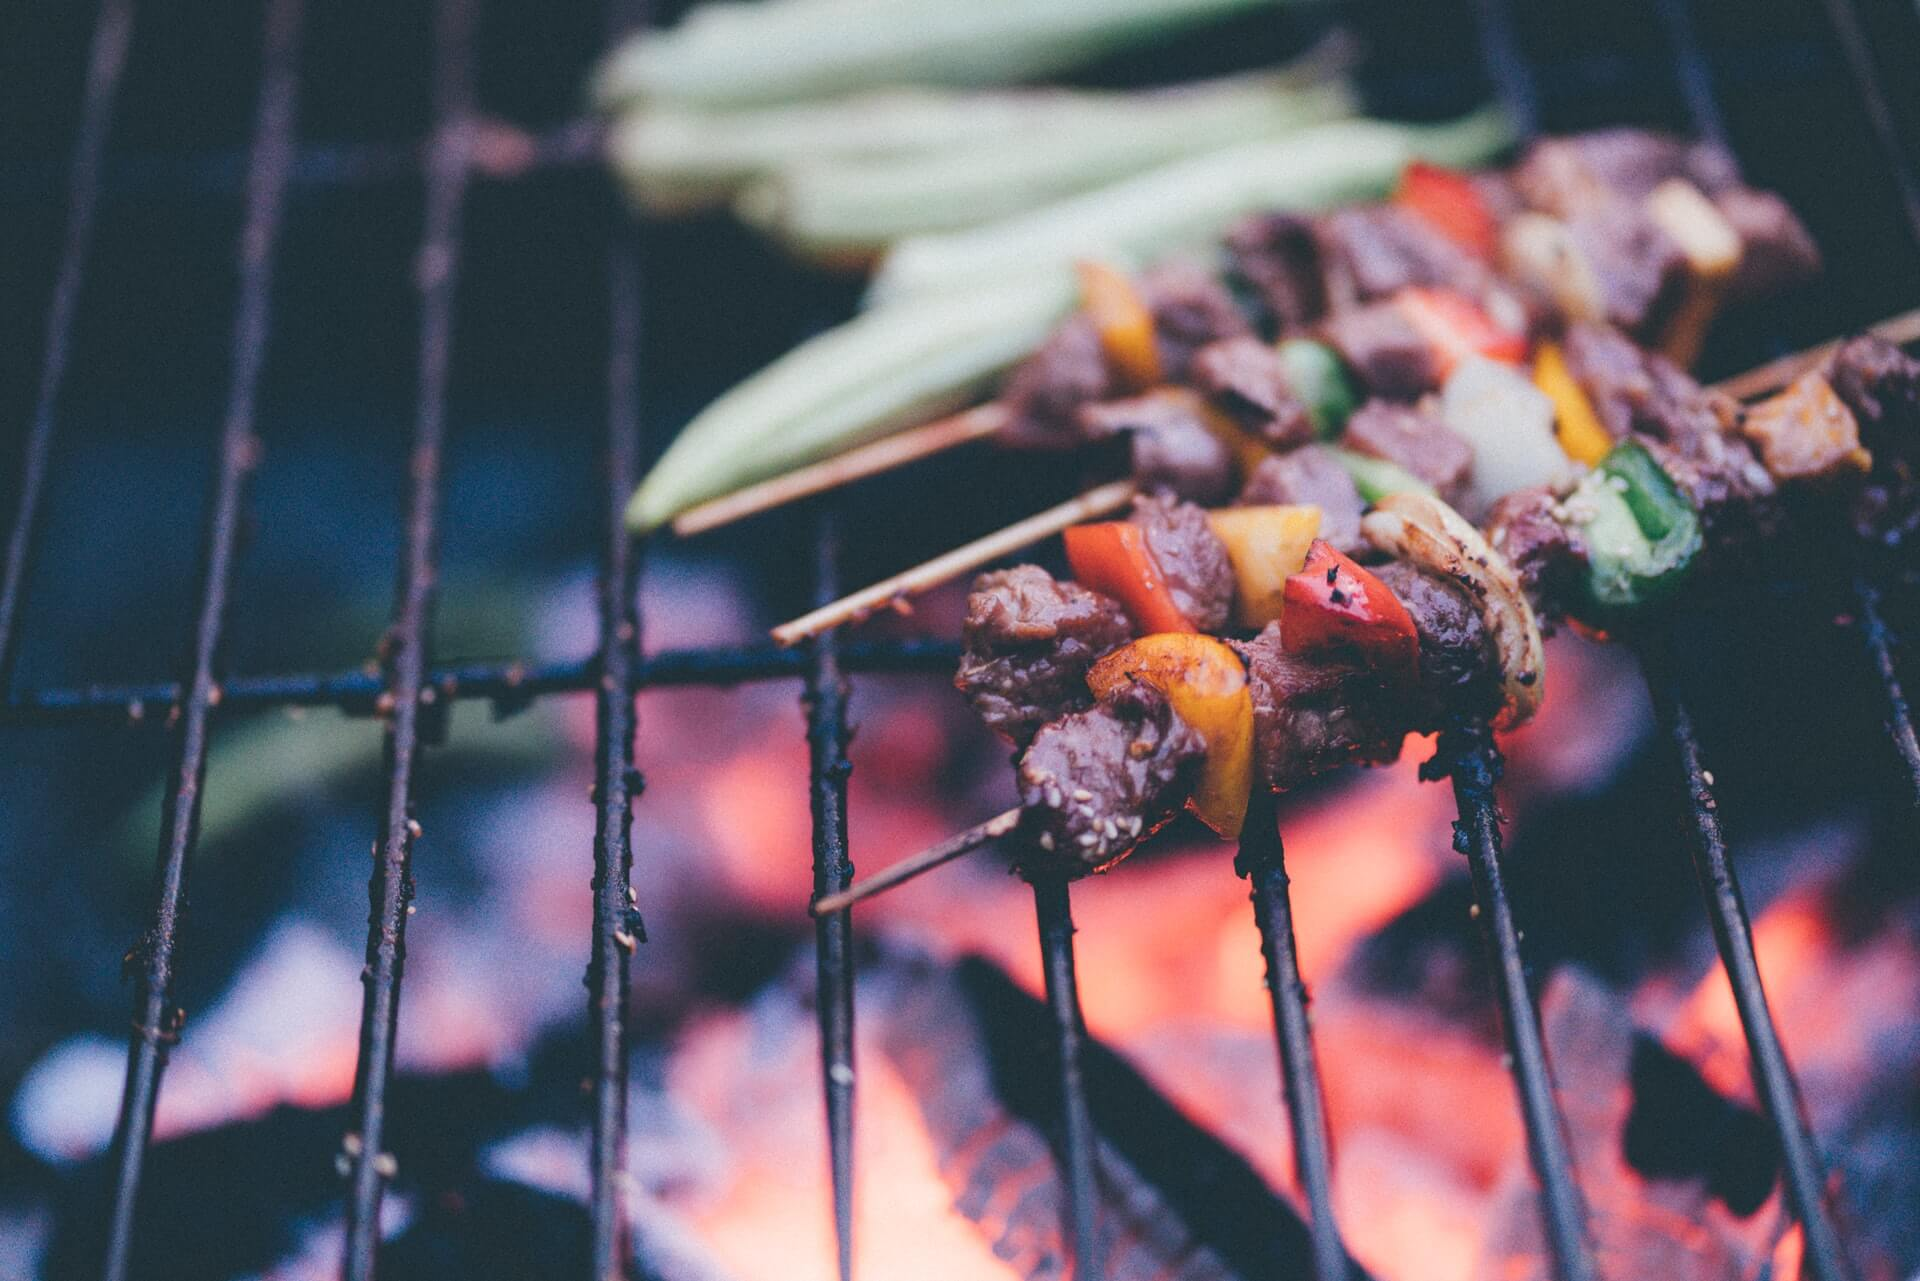 Kebabs tailgate dishes